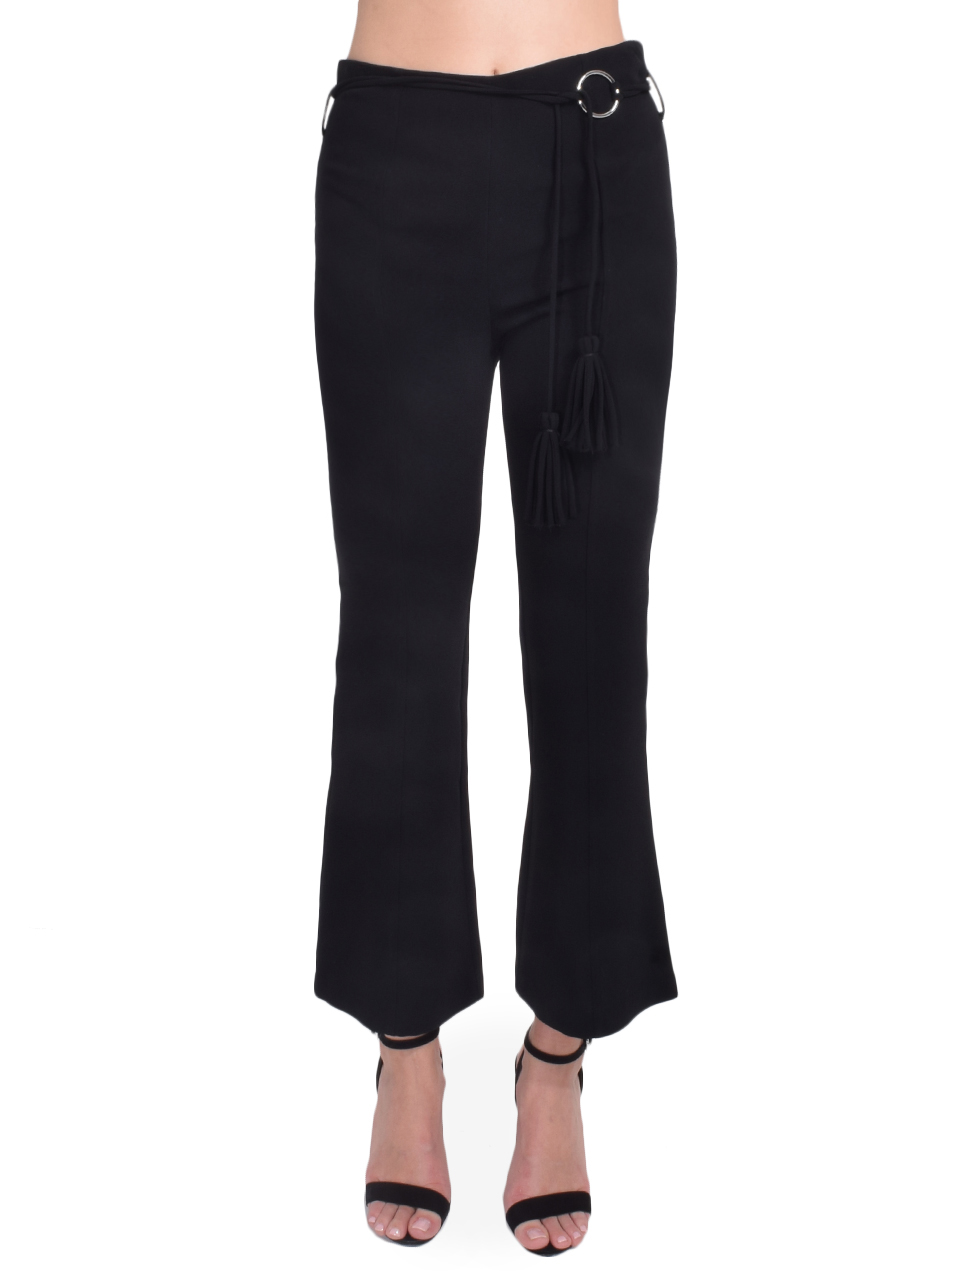 Cinq à Sept Avril Pant in Black Front View  X1https://cdn11.bigcommerce.com/s-3wu6n/products/33216/images/109560/92__60082.1590630093.244.365.jpg?c=2X2